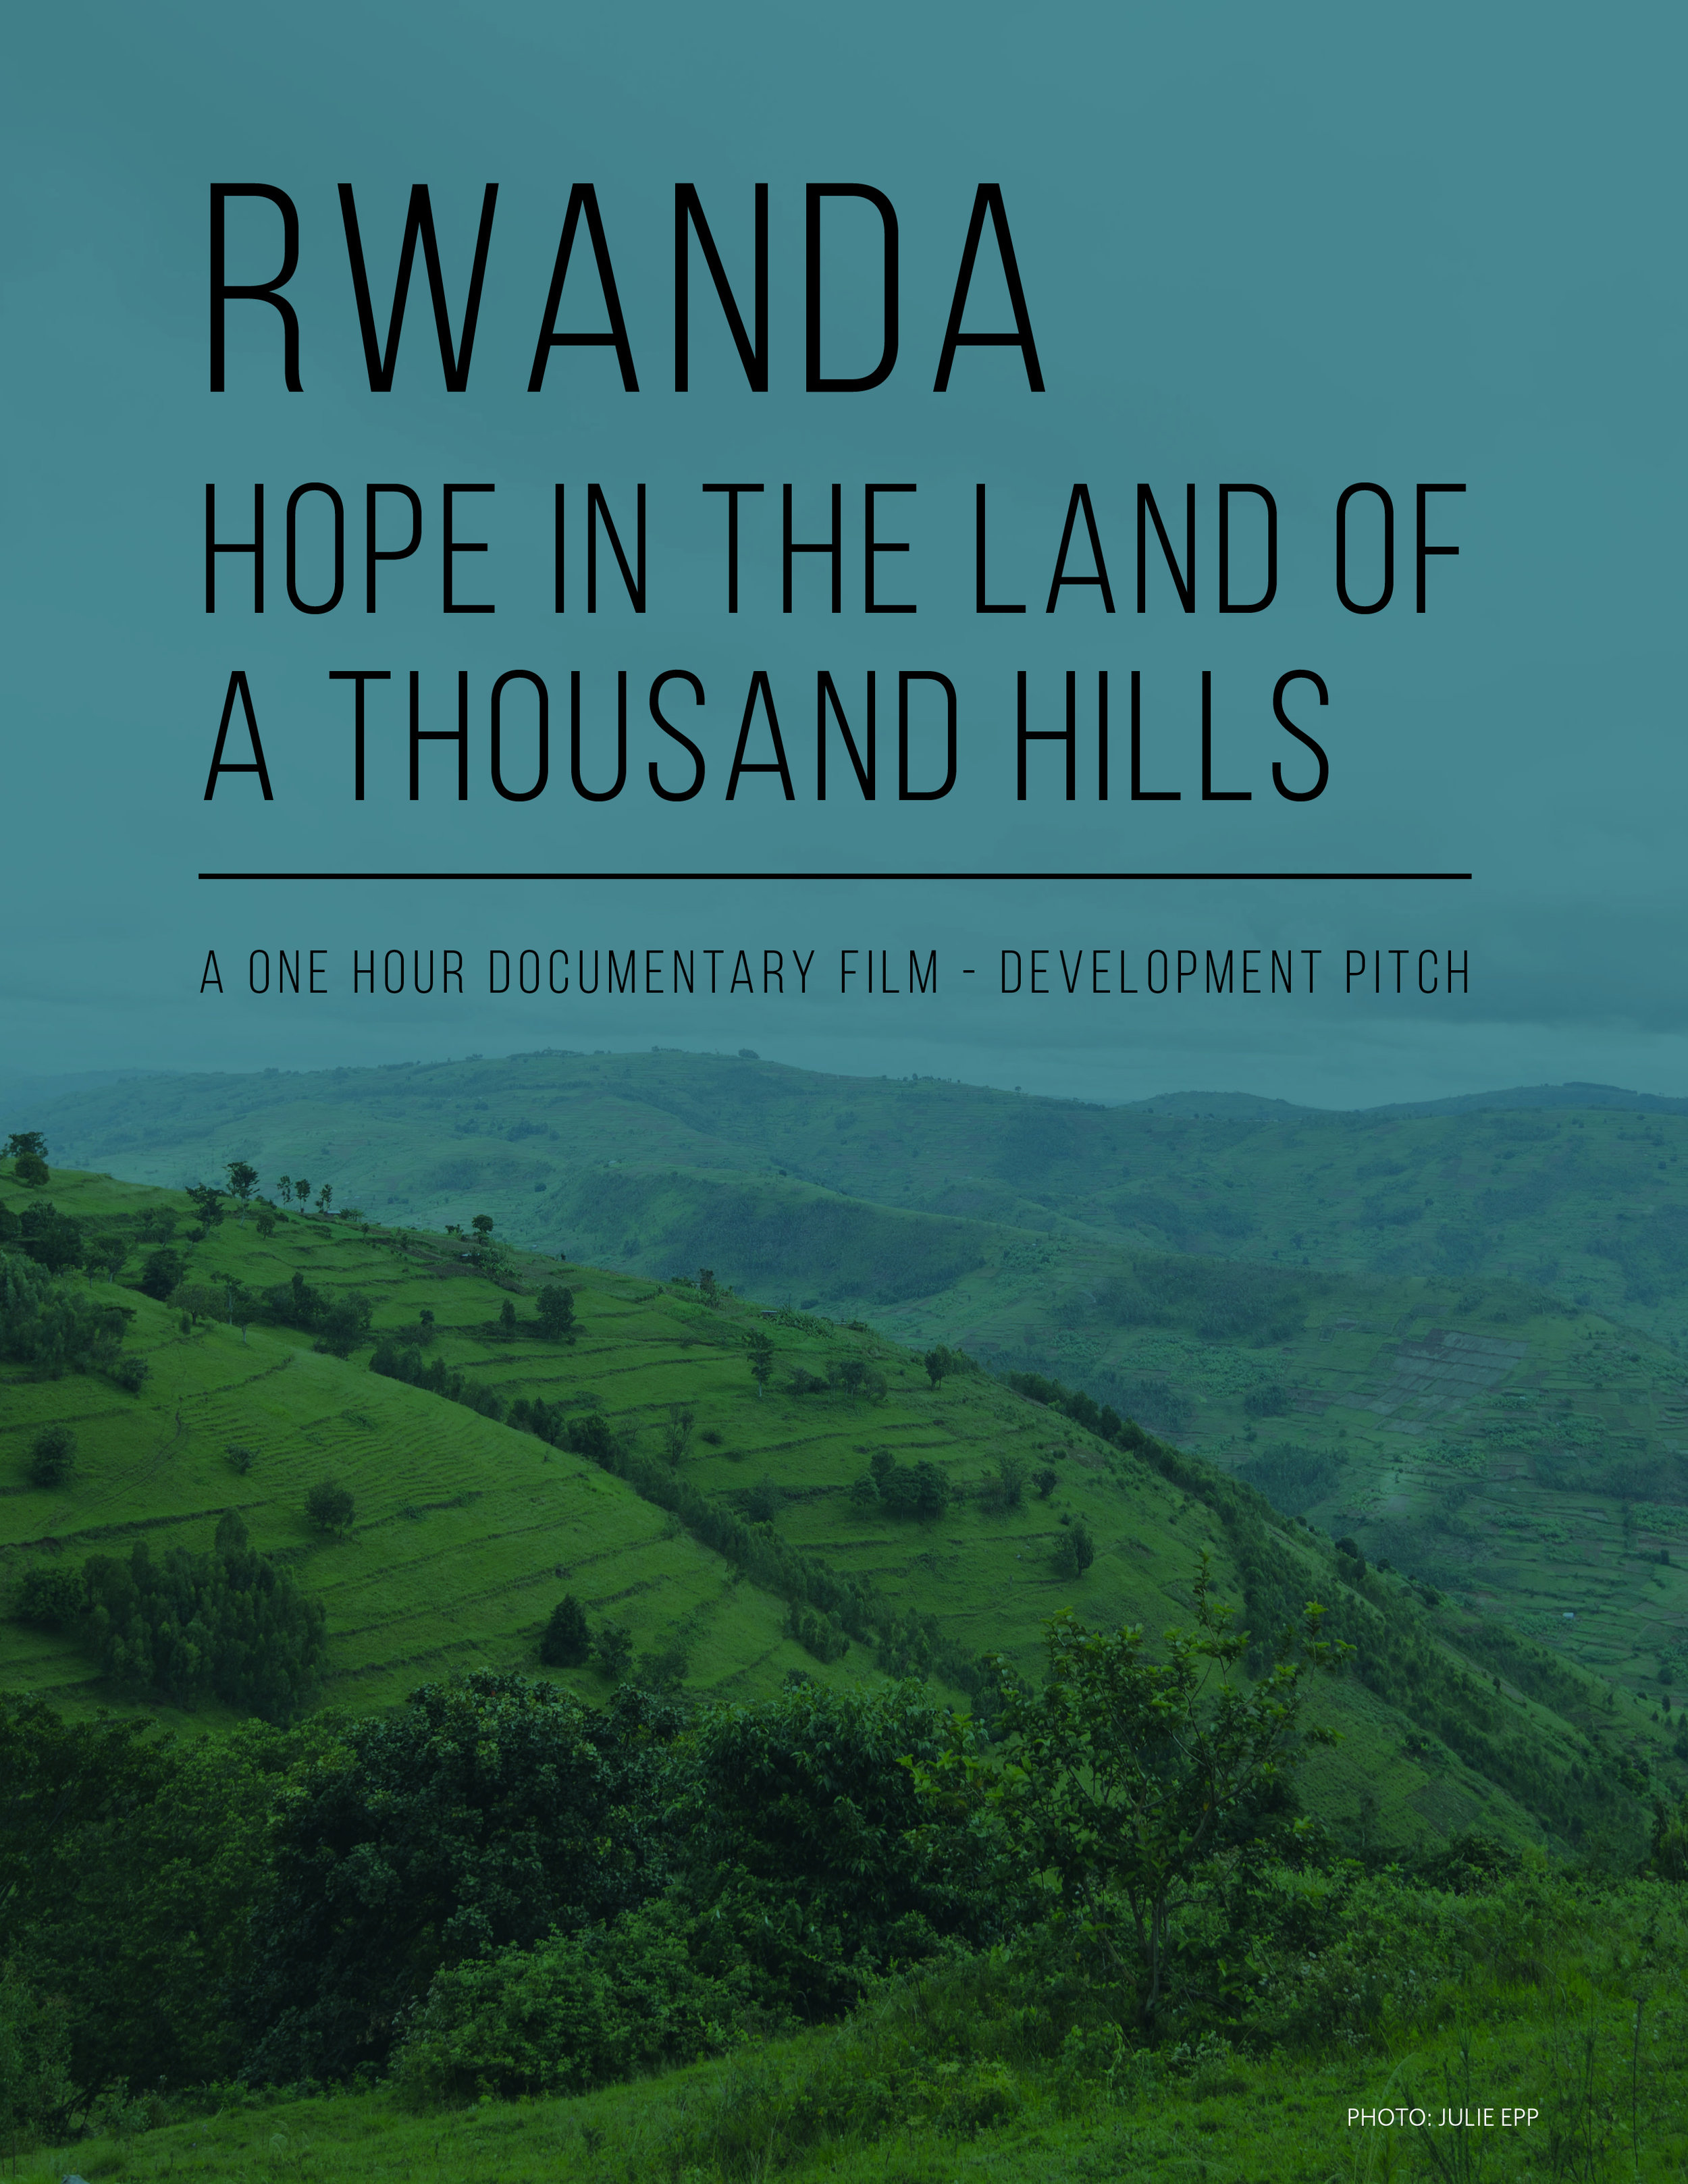 Hope in the Land of A Thousand Hills - Rwanda Documentary film pitch